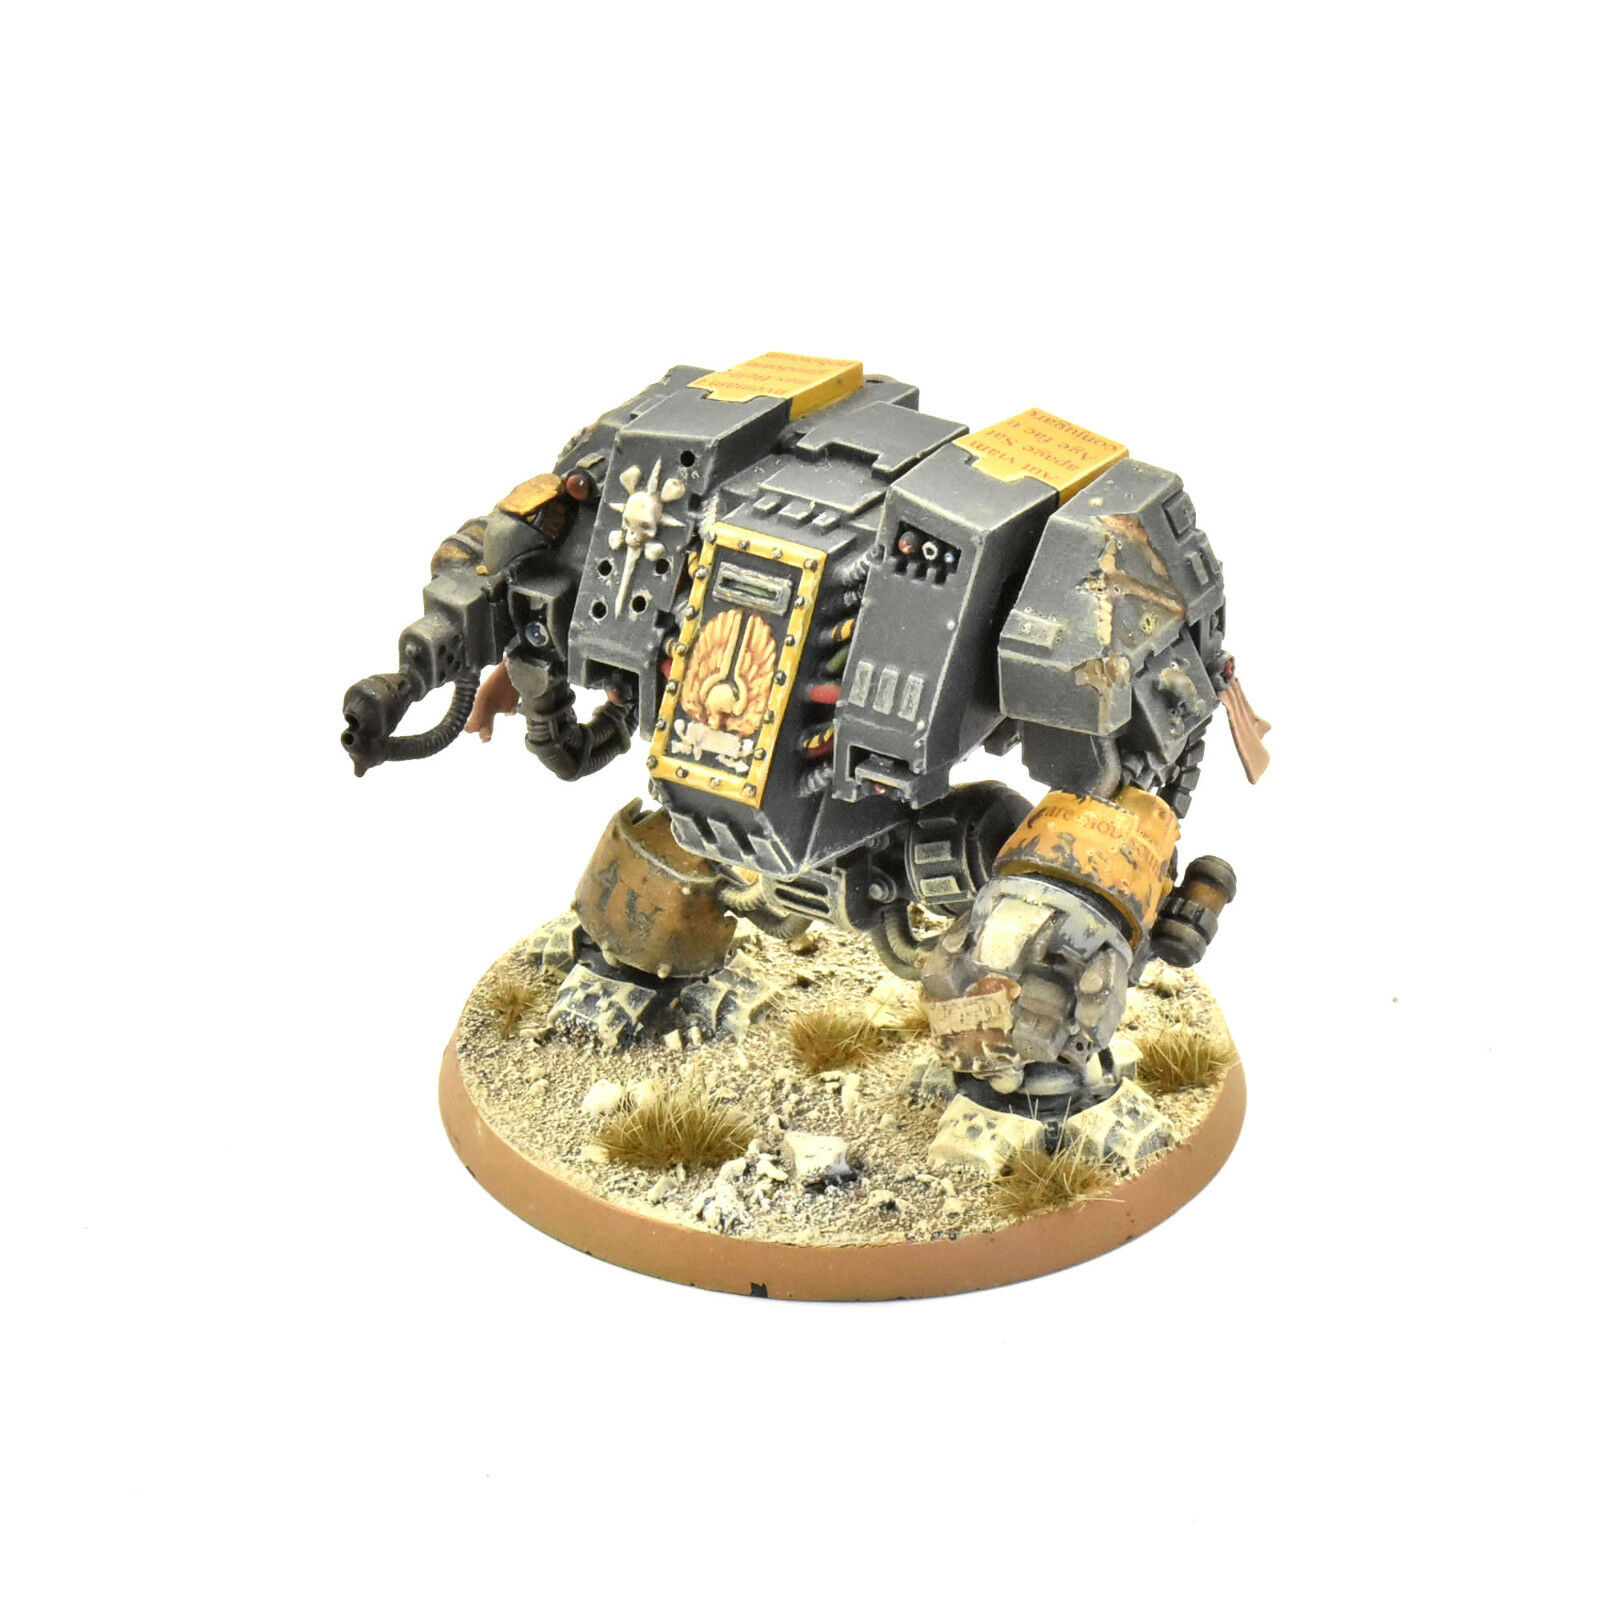 SPACE MARINES Heavy flamer dreadnought PRO PAINTED 40K Red Scorpions army